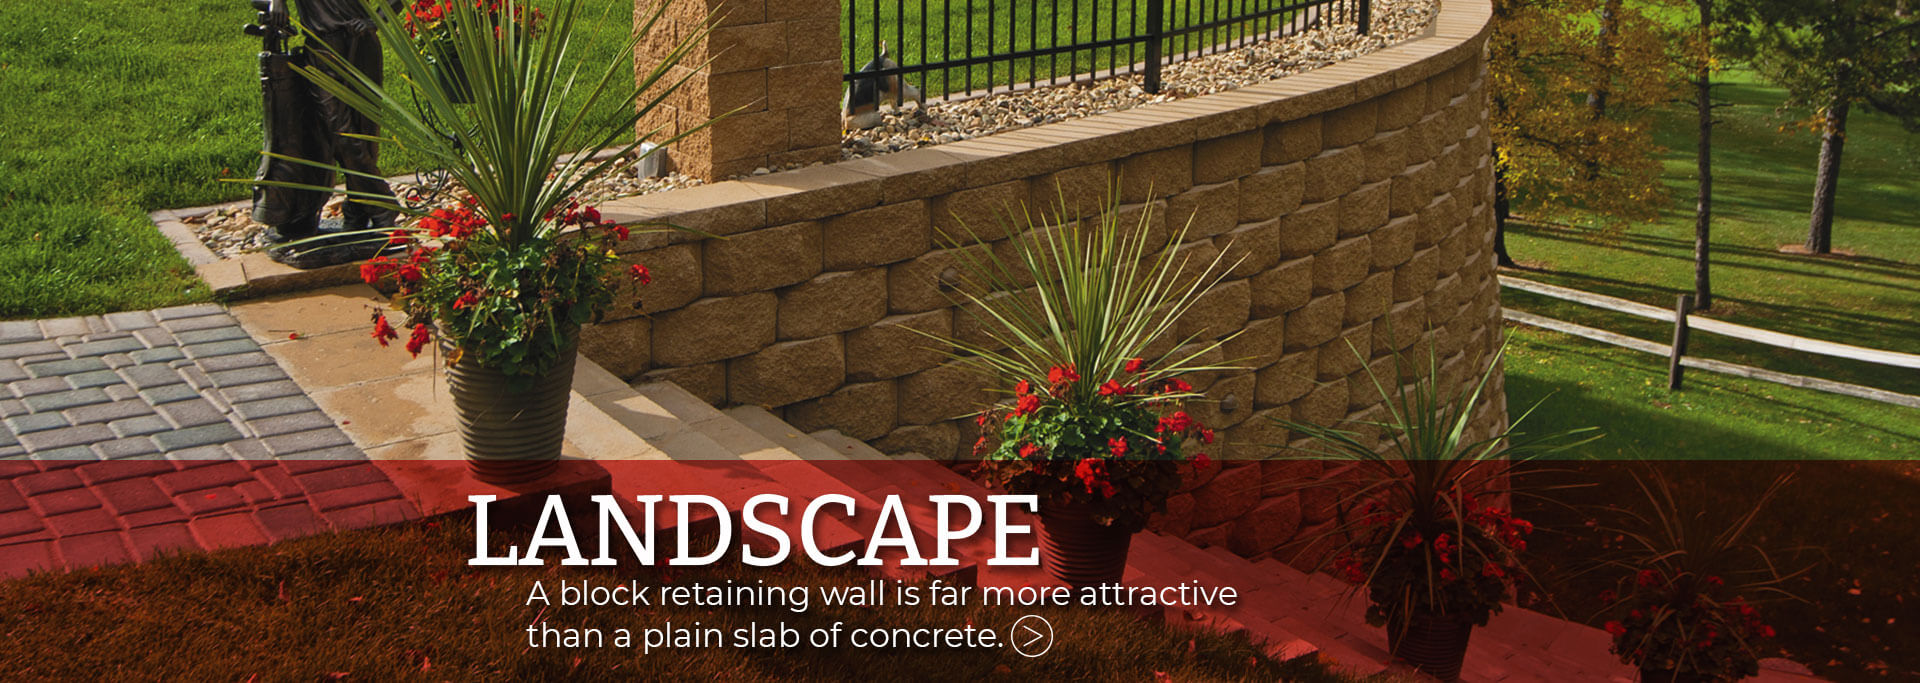 ABC-Block-Landscape--Retaining-Walls